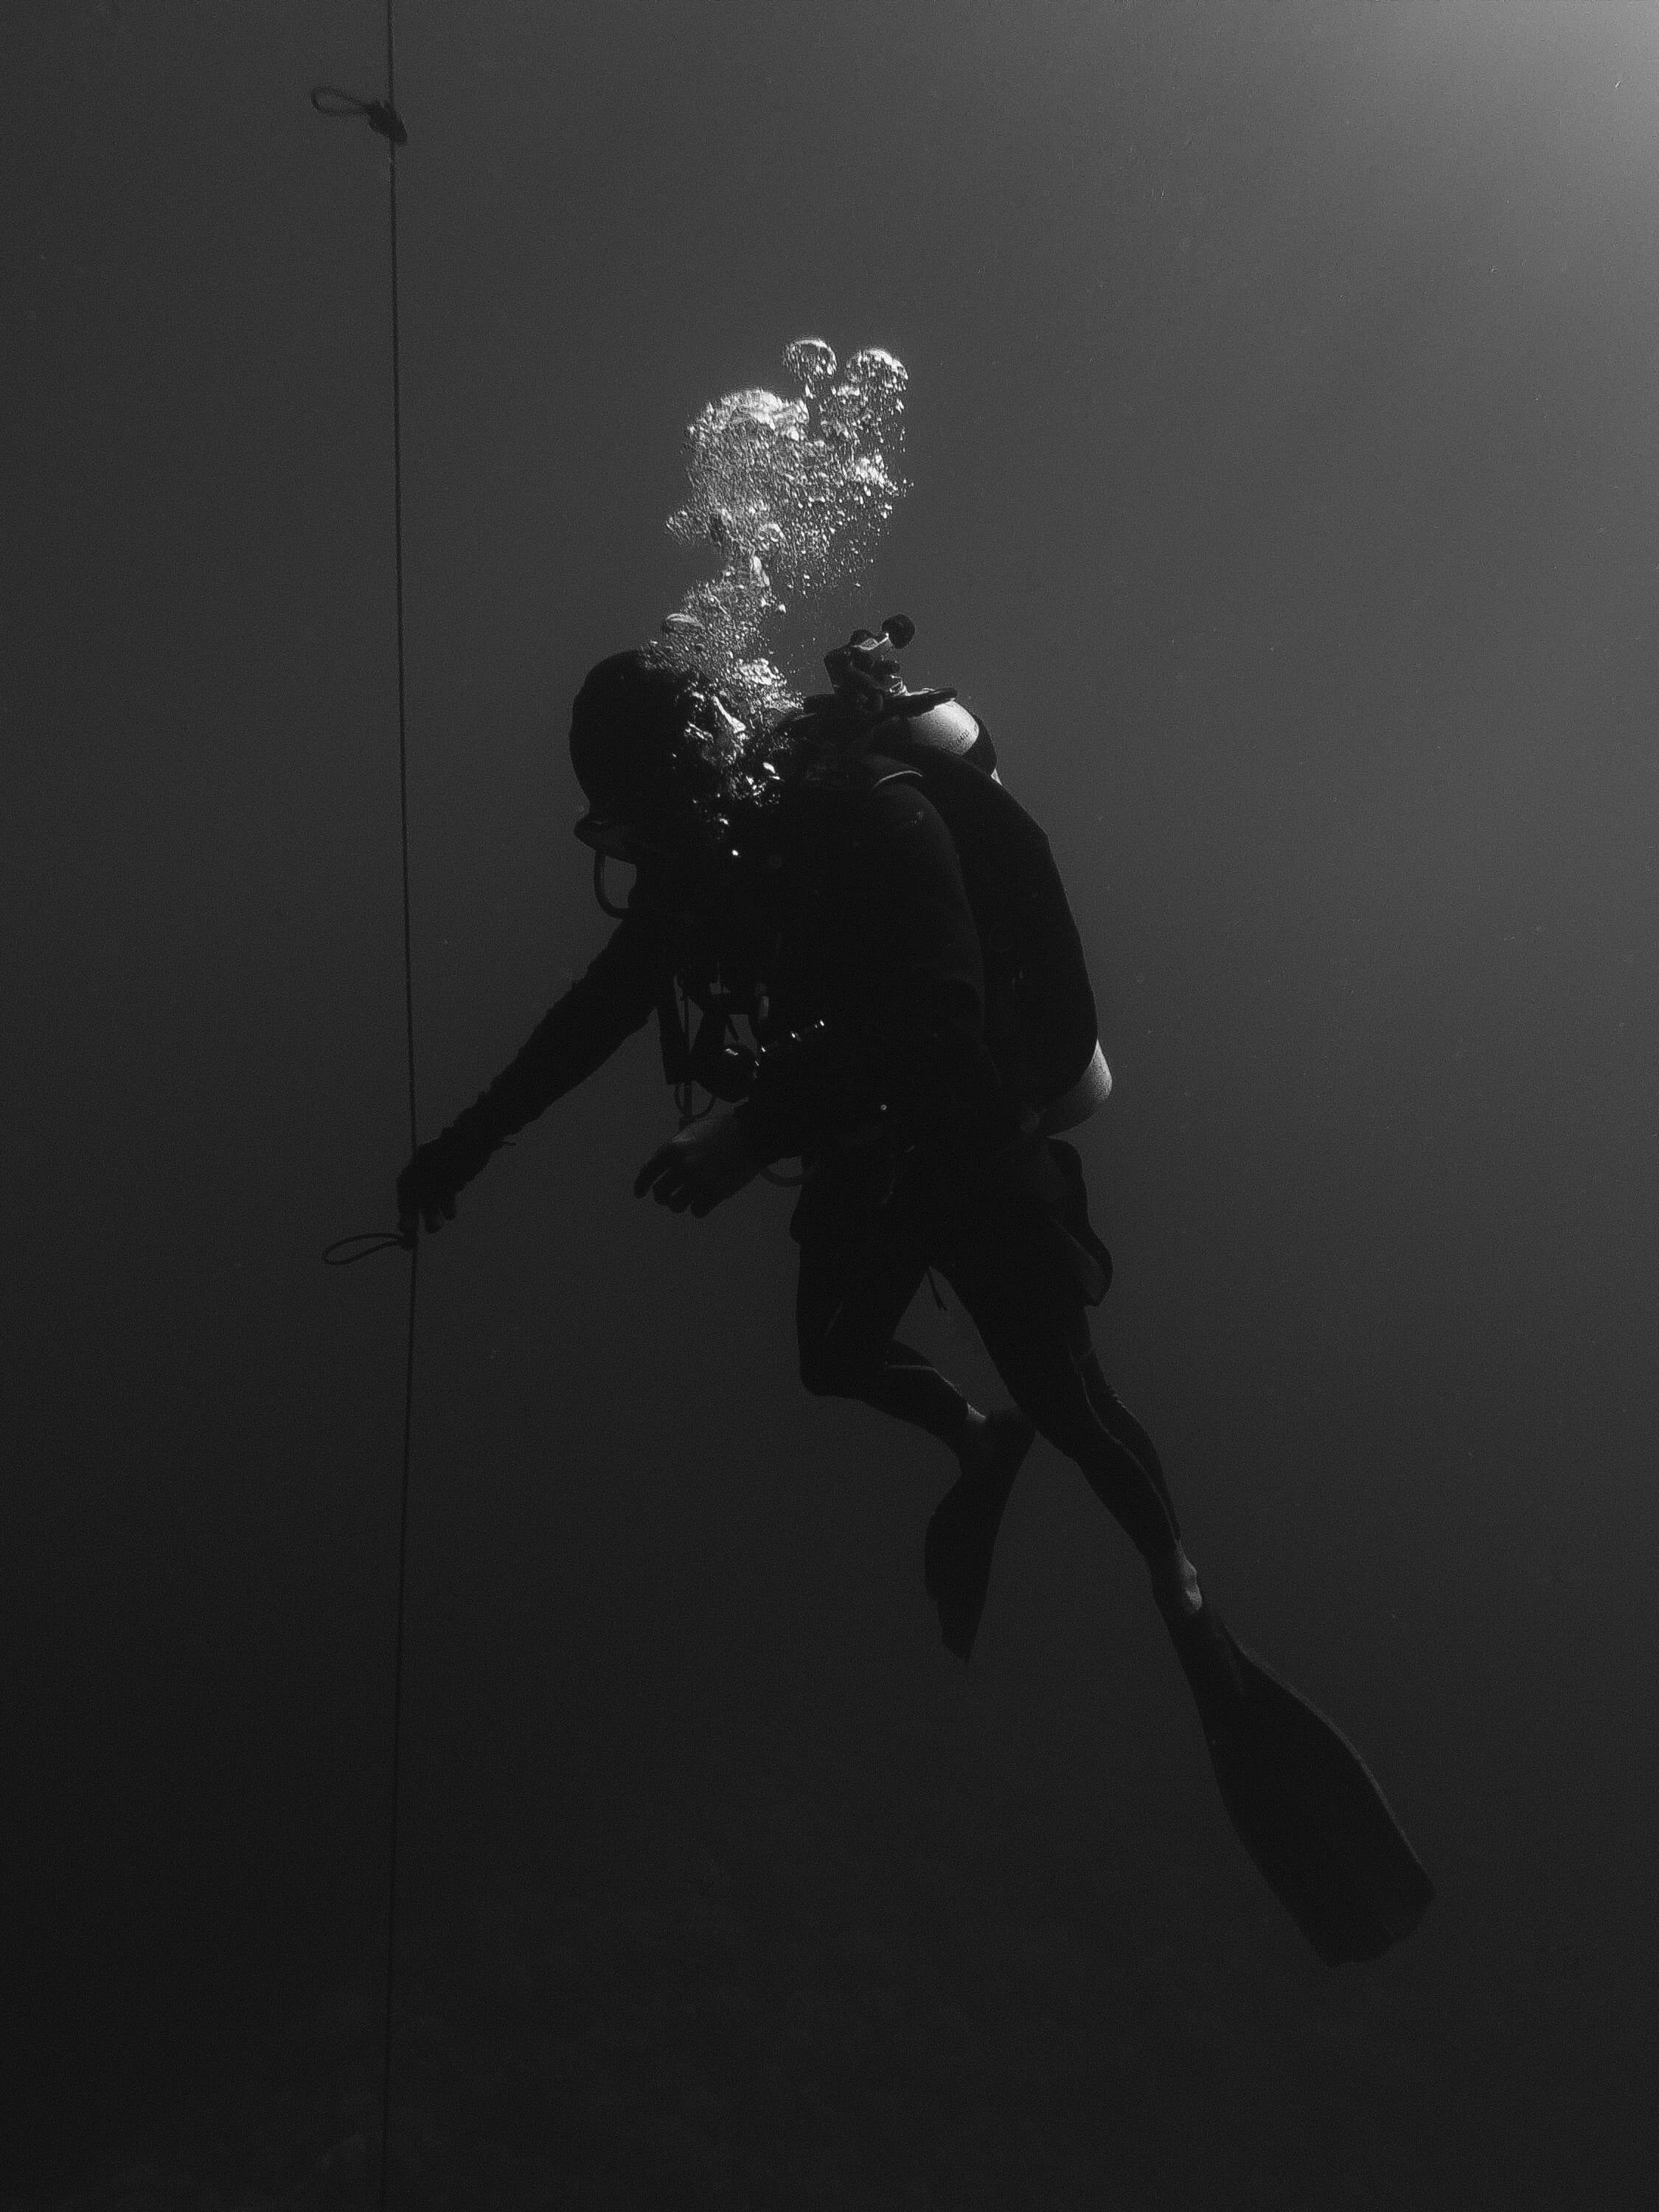 man scuba diving at night